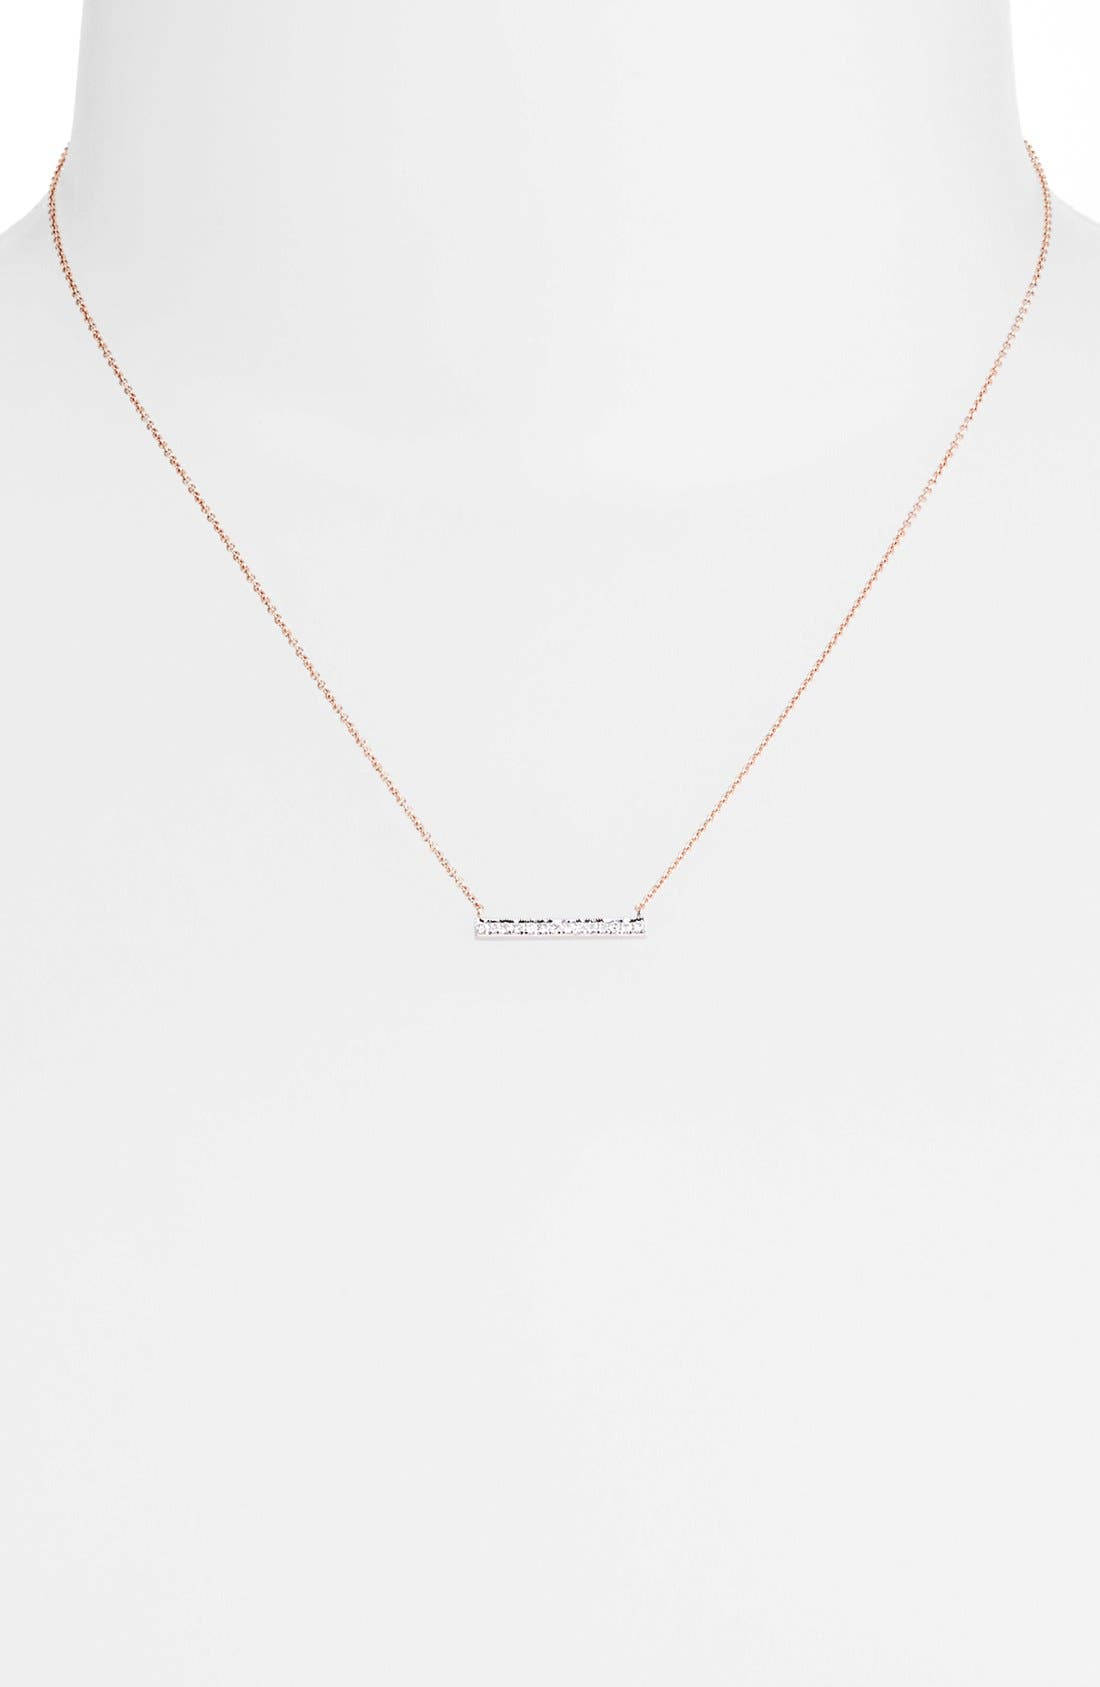 Alternate Image 2  - Dana Rebecca Designs 'Sylvie Rose' Medium Diamond Bar Pendant Necklace